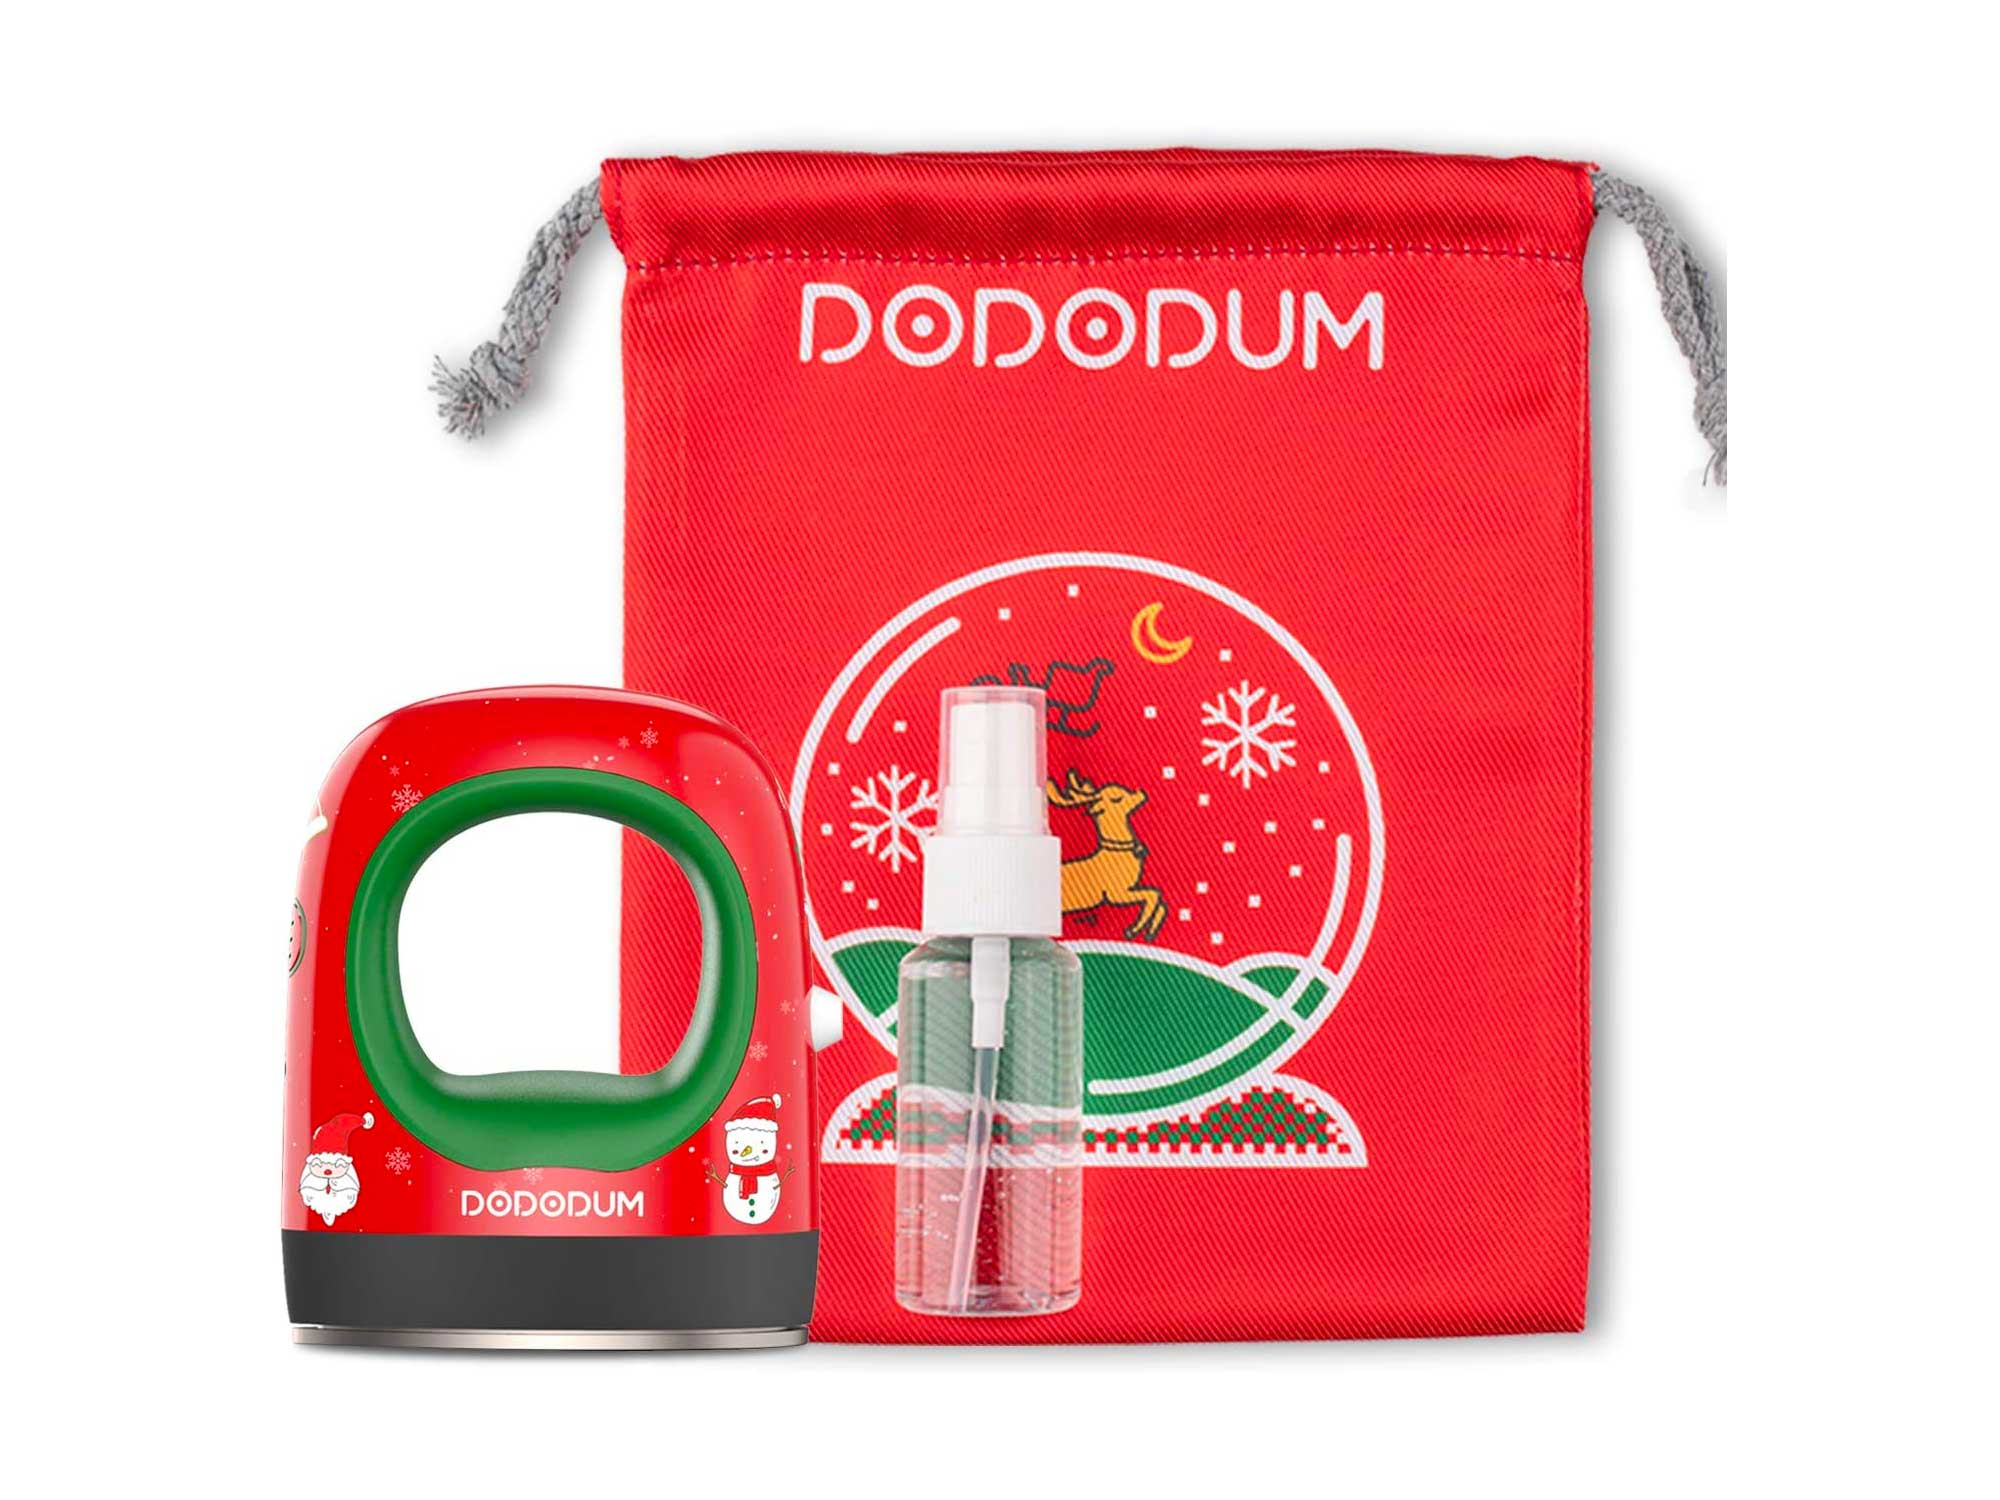 DODODUM EasyPress Mini Heat Press Machine for T Shirts Shoes Hats Small HTV Vinyl Projects Portable Mini Easy Press for Heating Transfer-Christmas